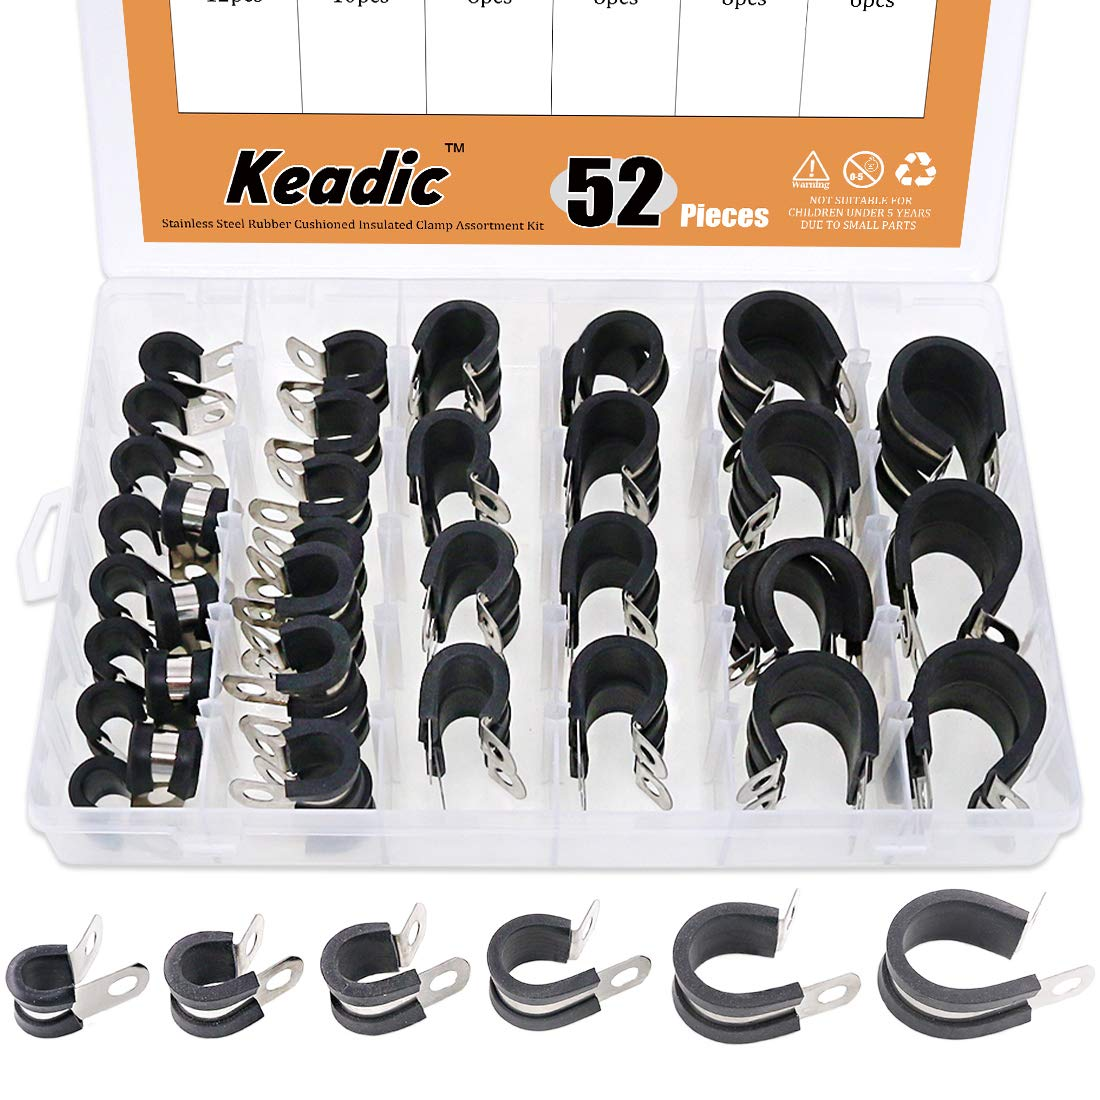 Keadic 52Pcs 1/4'' 3/8'' 1/2'' 5/8'' 3/4'' 1'' Cable Clamp Rubber Wire Clamps Stainless Steel Rubber Cushioned Insulated Clamps Metal Clamp Assortment Kit with Durable Storage Box by Keadic